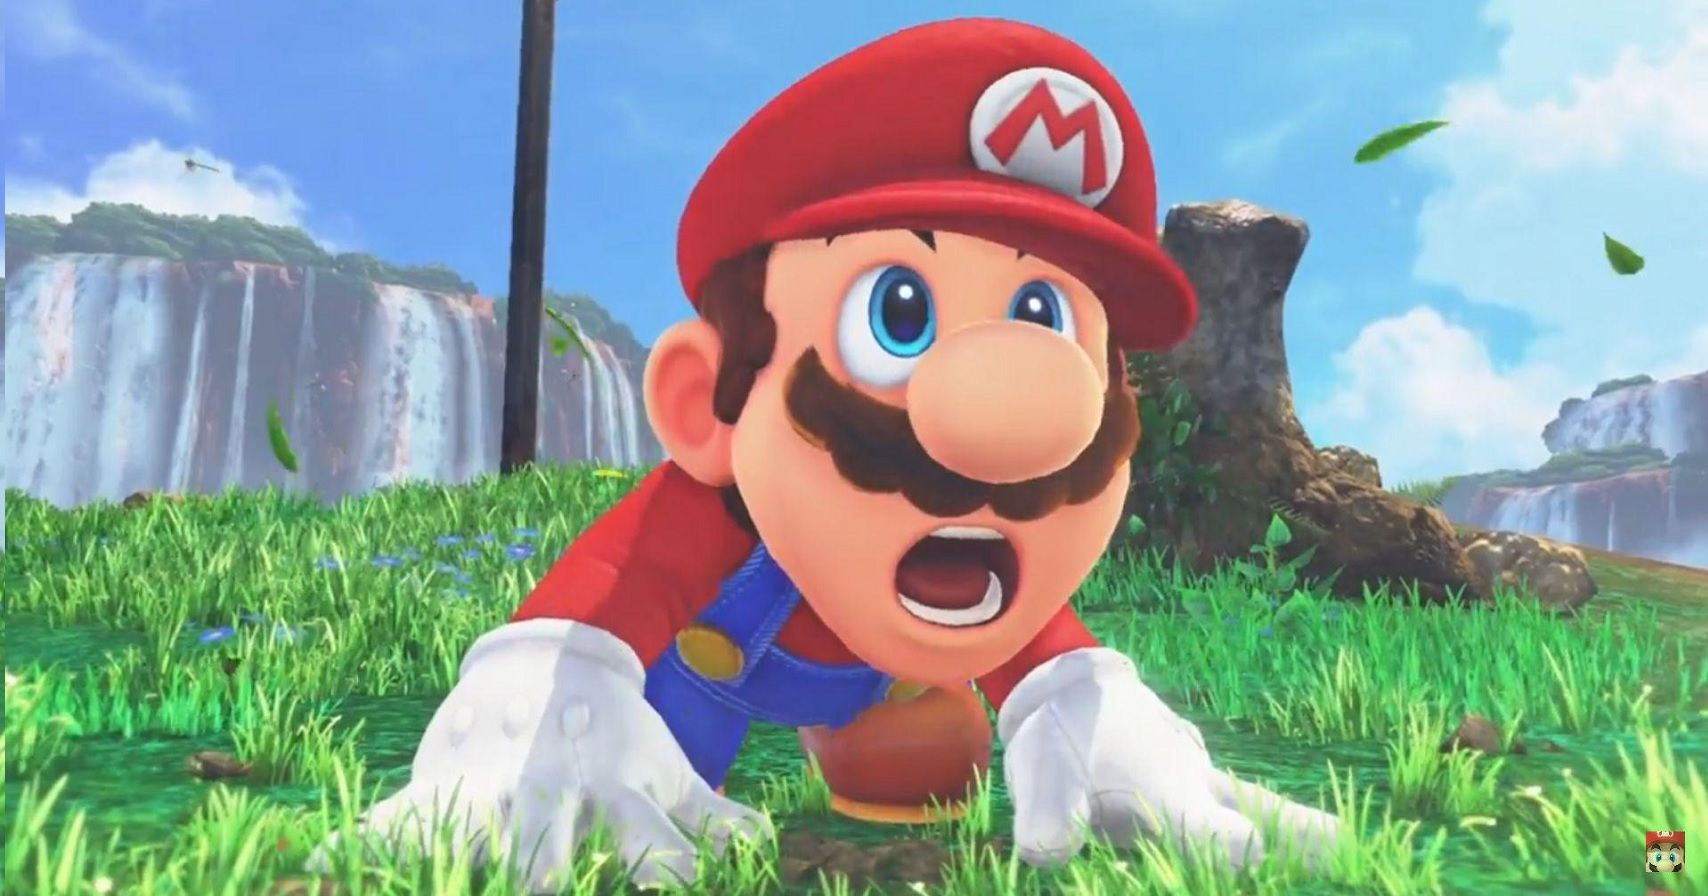 The 10 Most Awesome Super Mario Odyssey Kingdoms Ranked